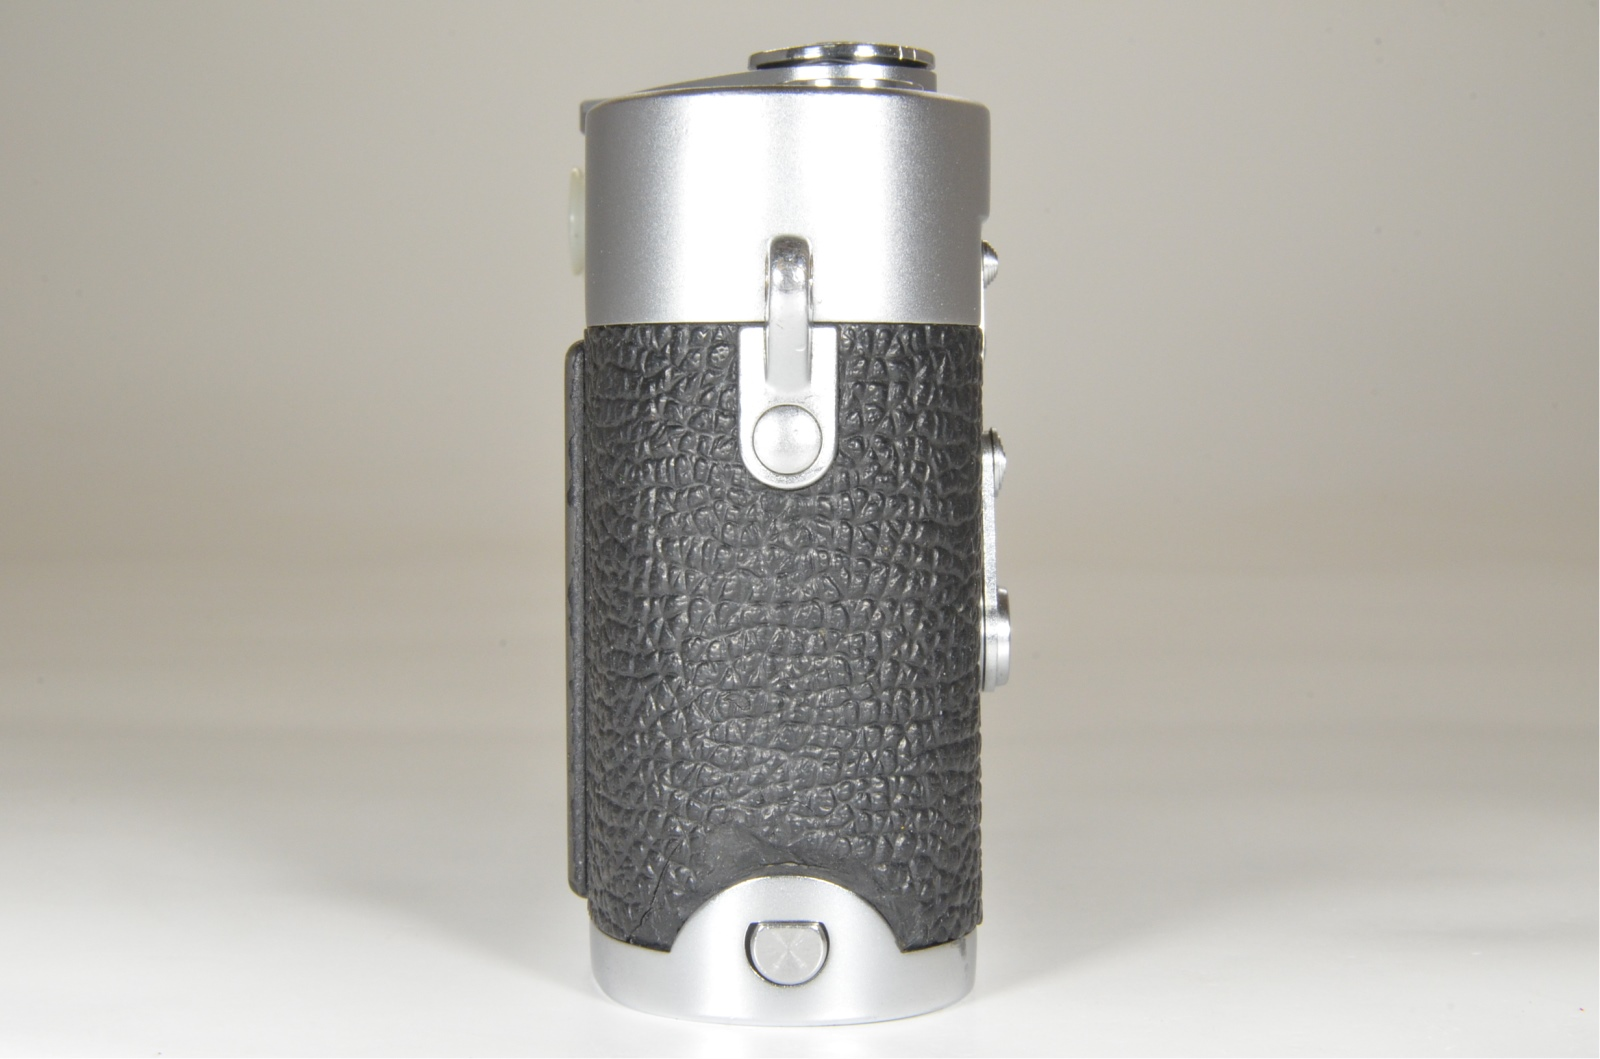 leica m3 double stroke s/n 886839 year 1957 with strap